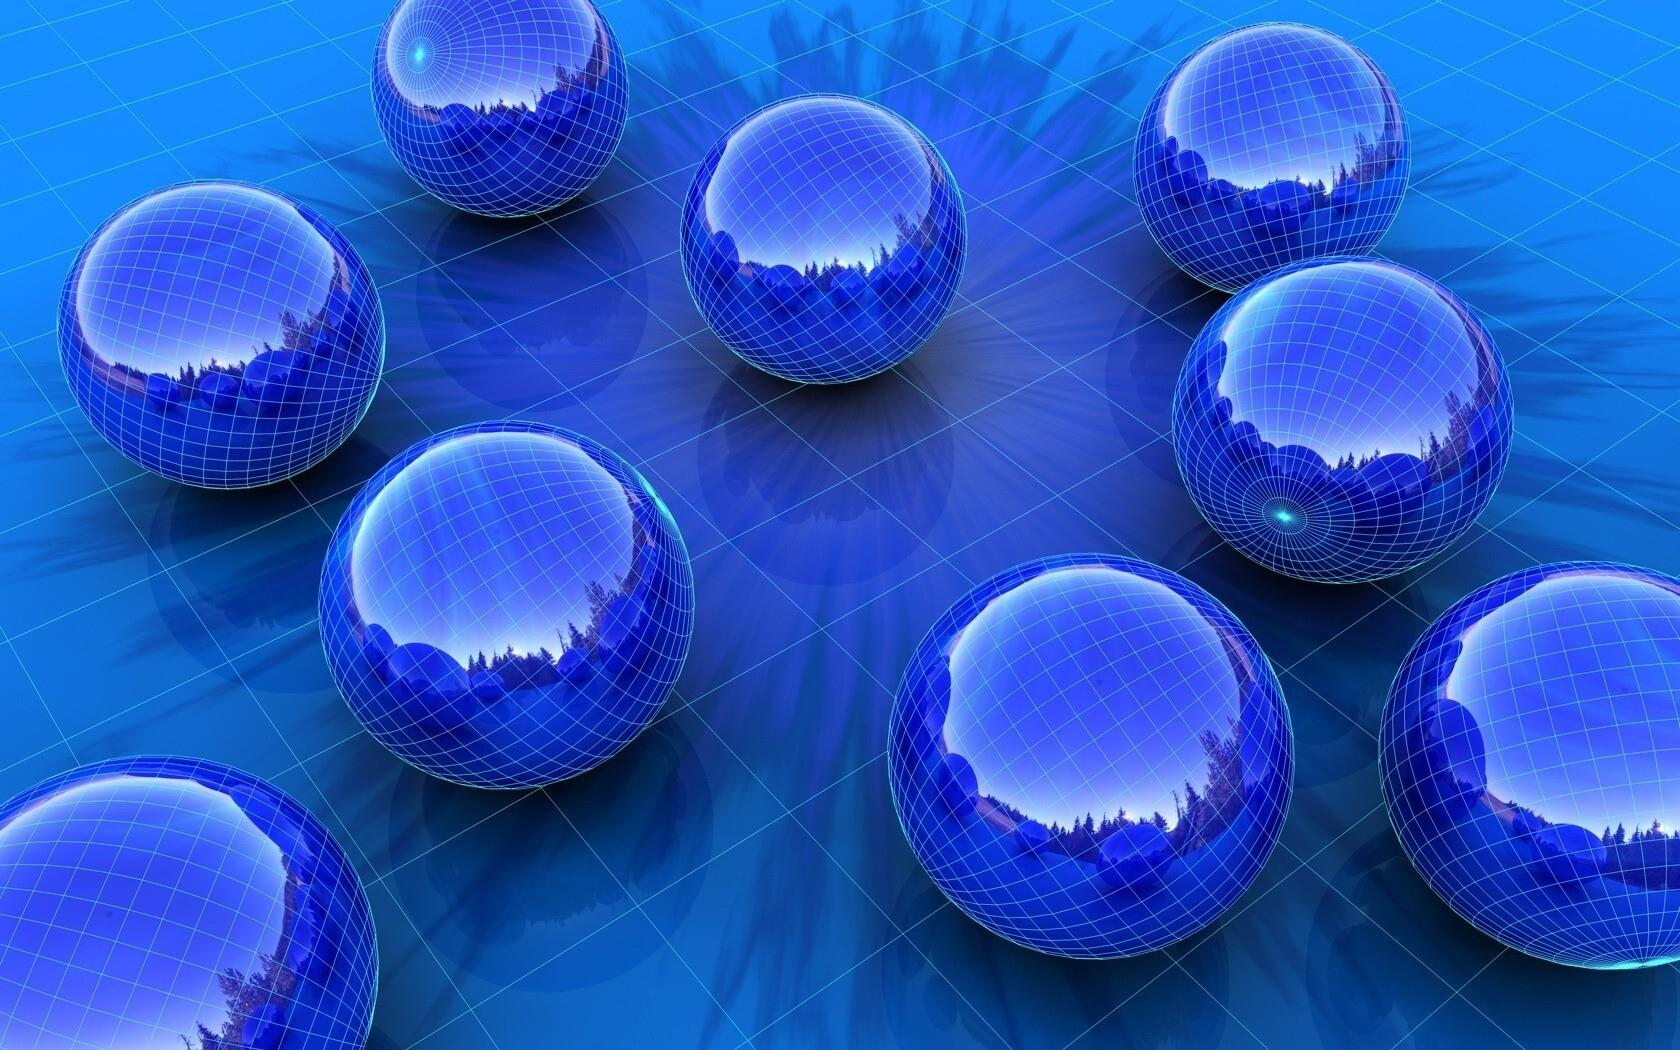 1680x1050 3D Blue Balls HD Wallpaper